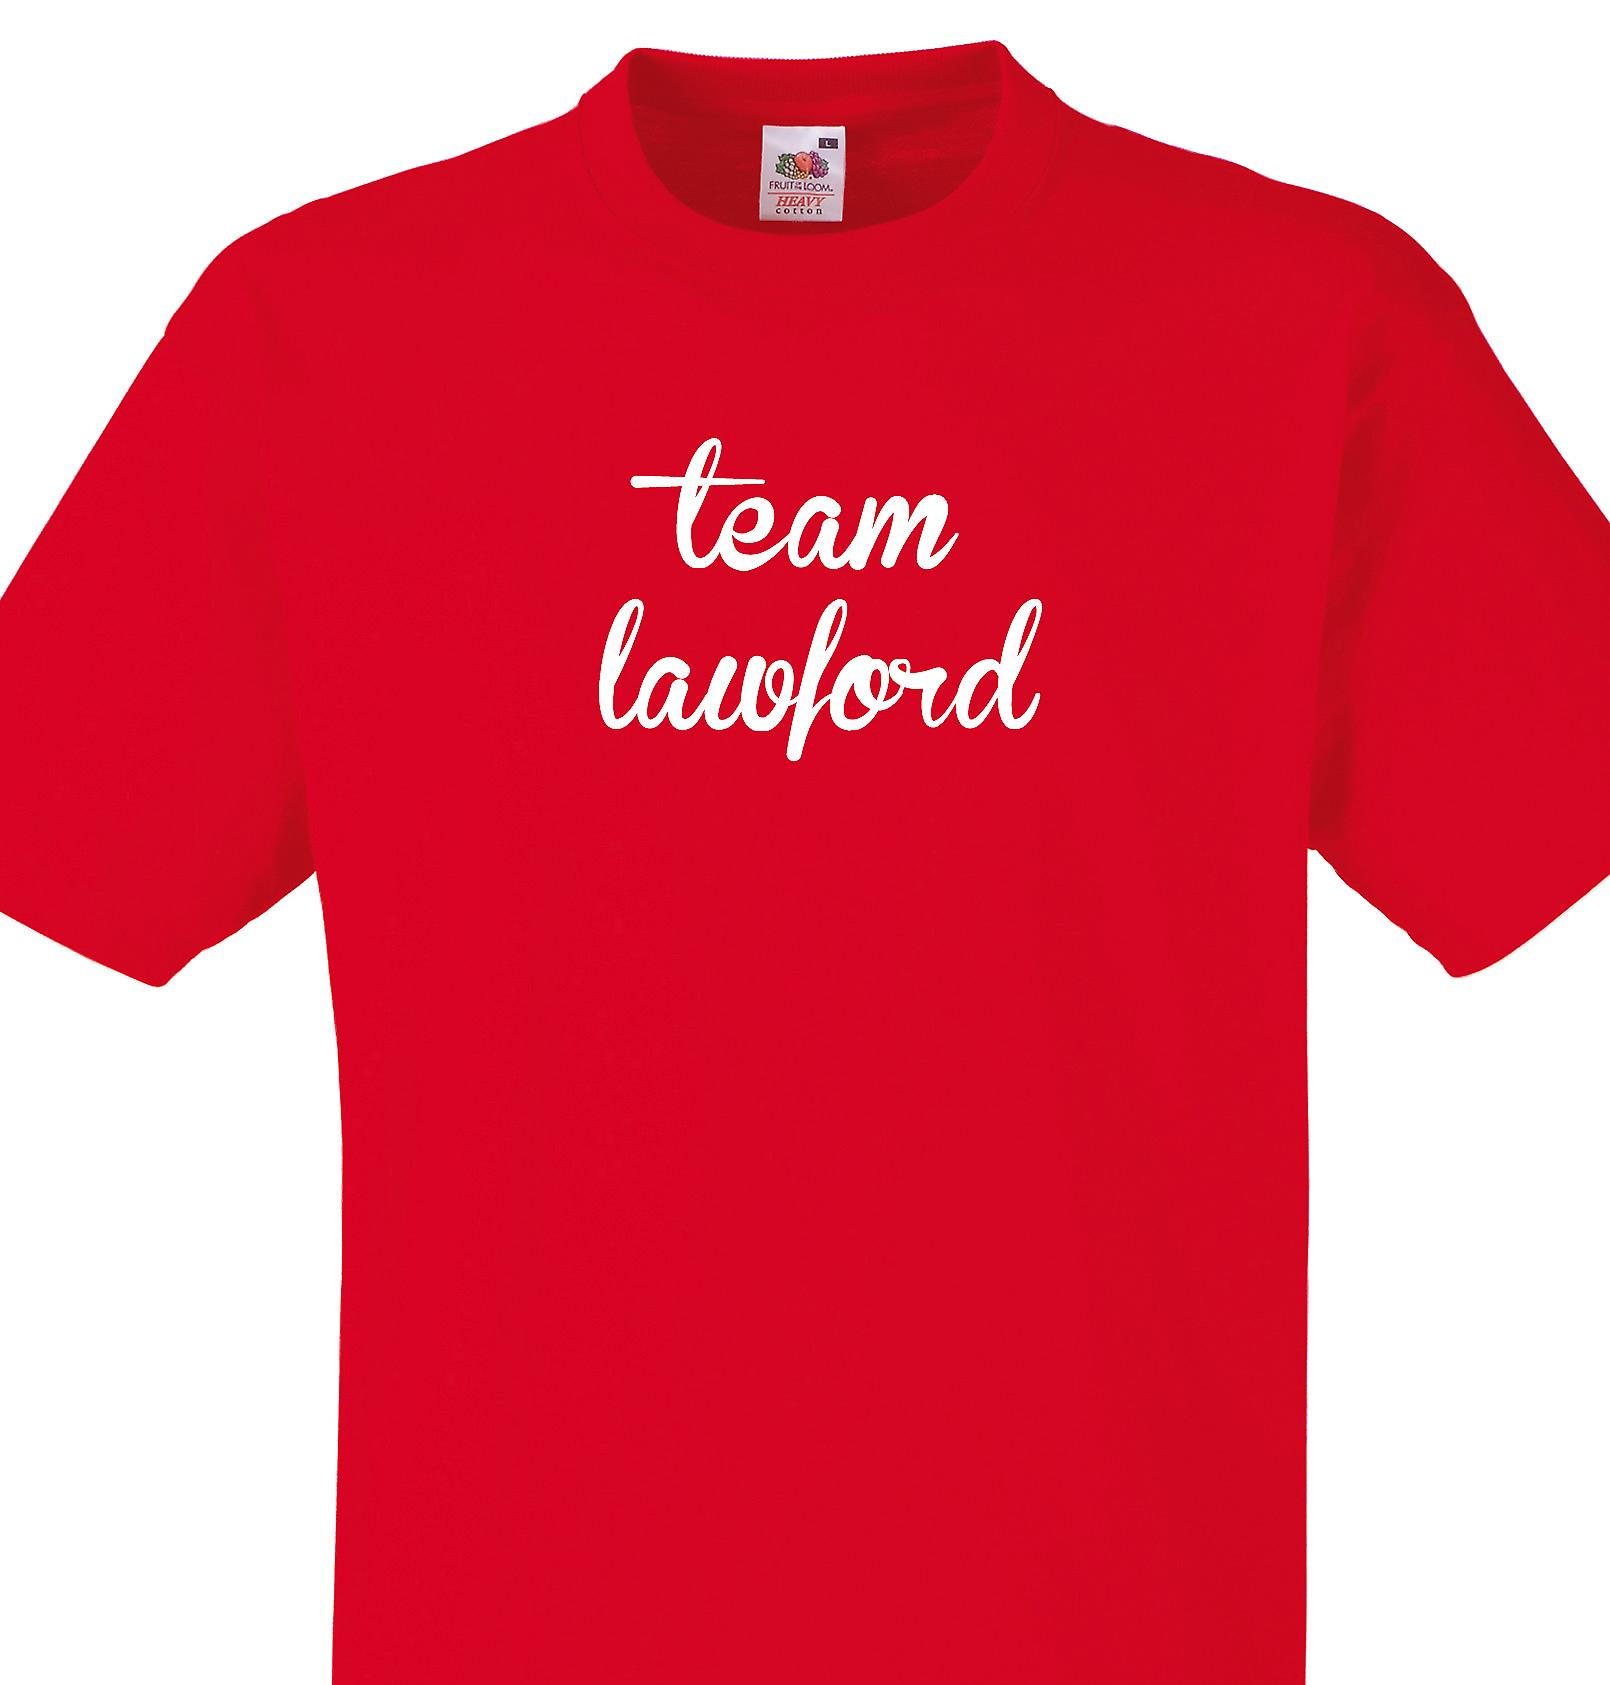 Team Lawford Red T shirt